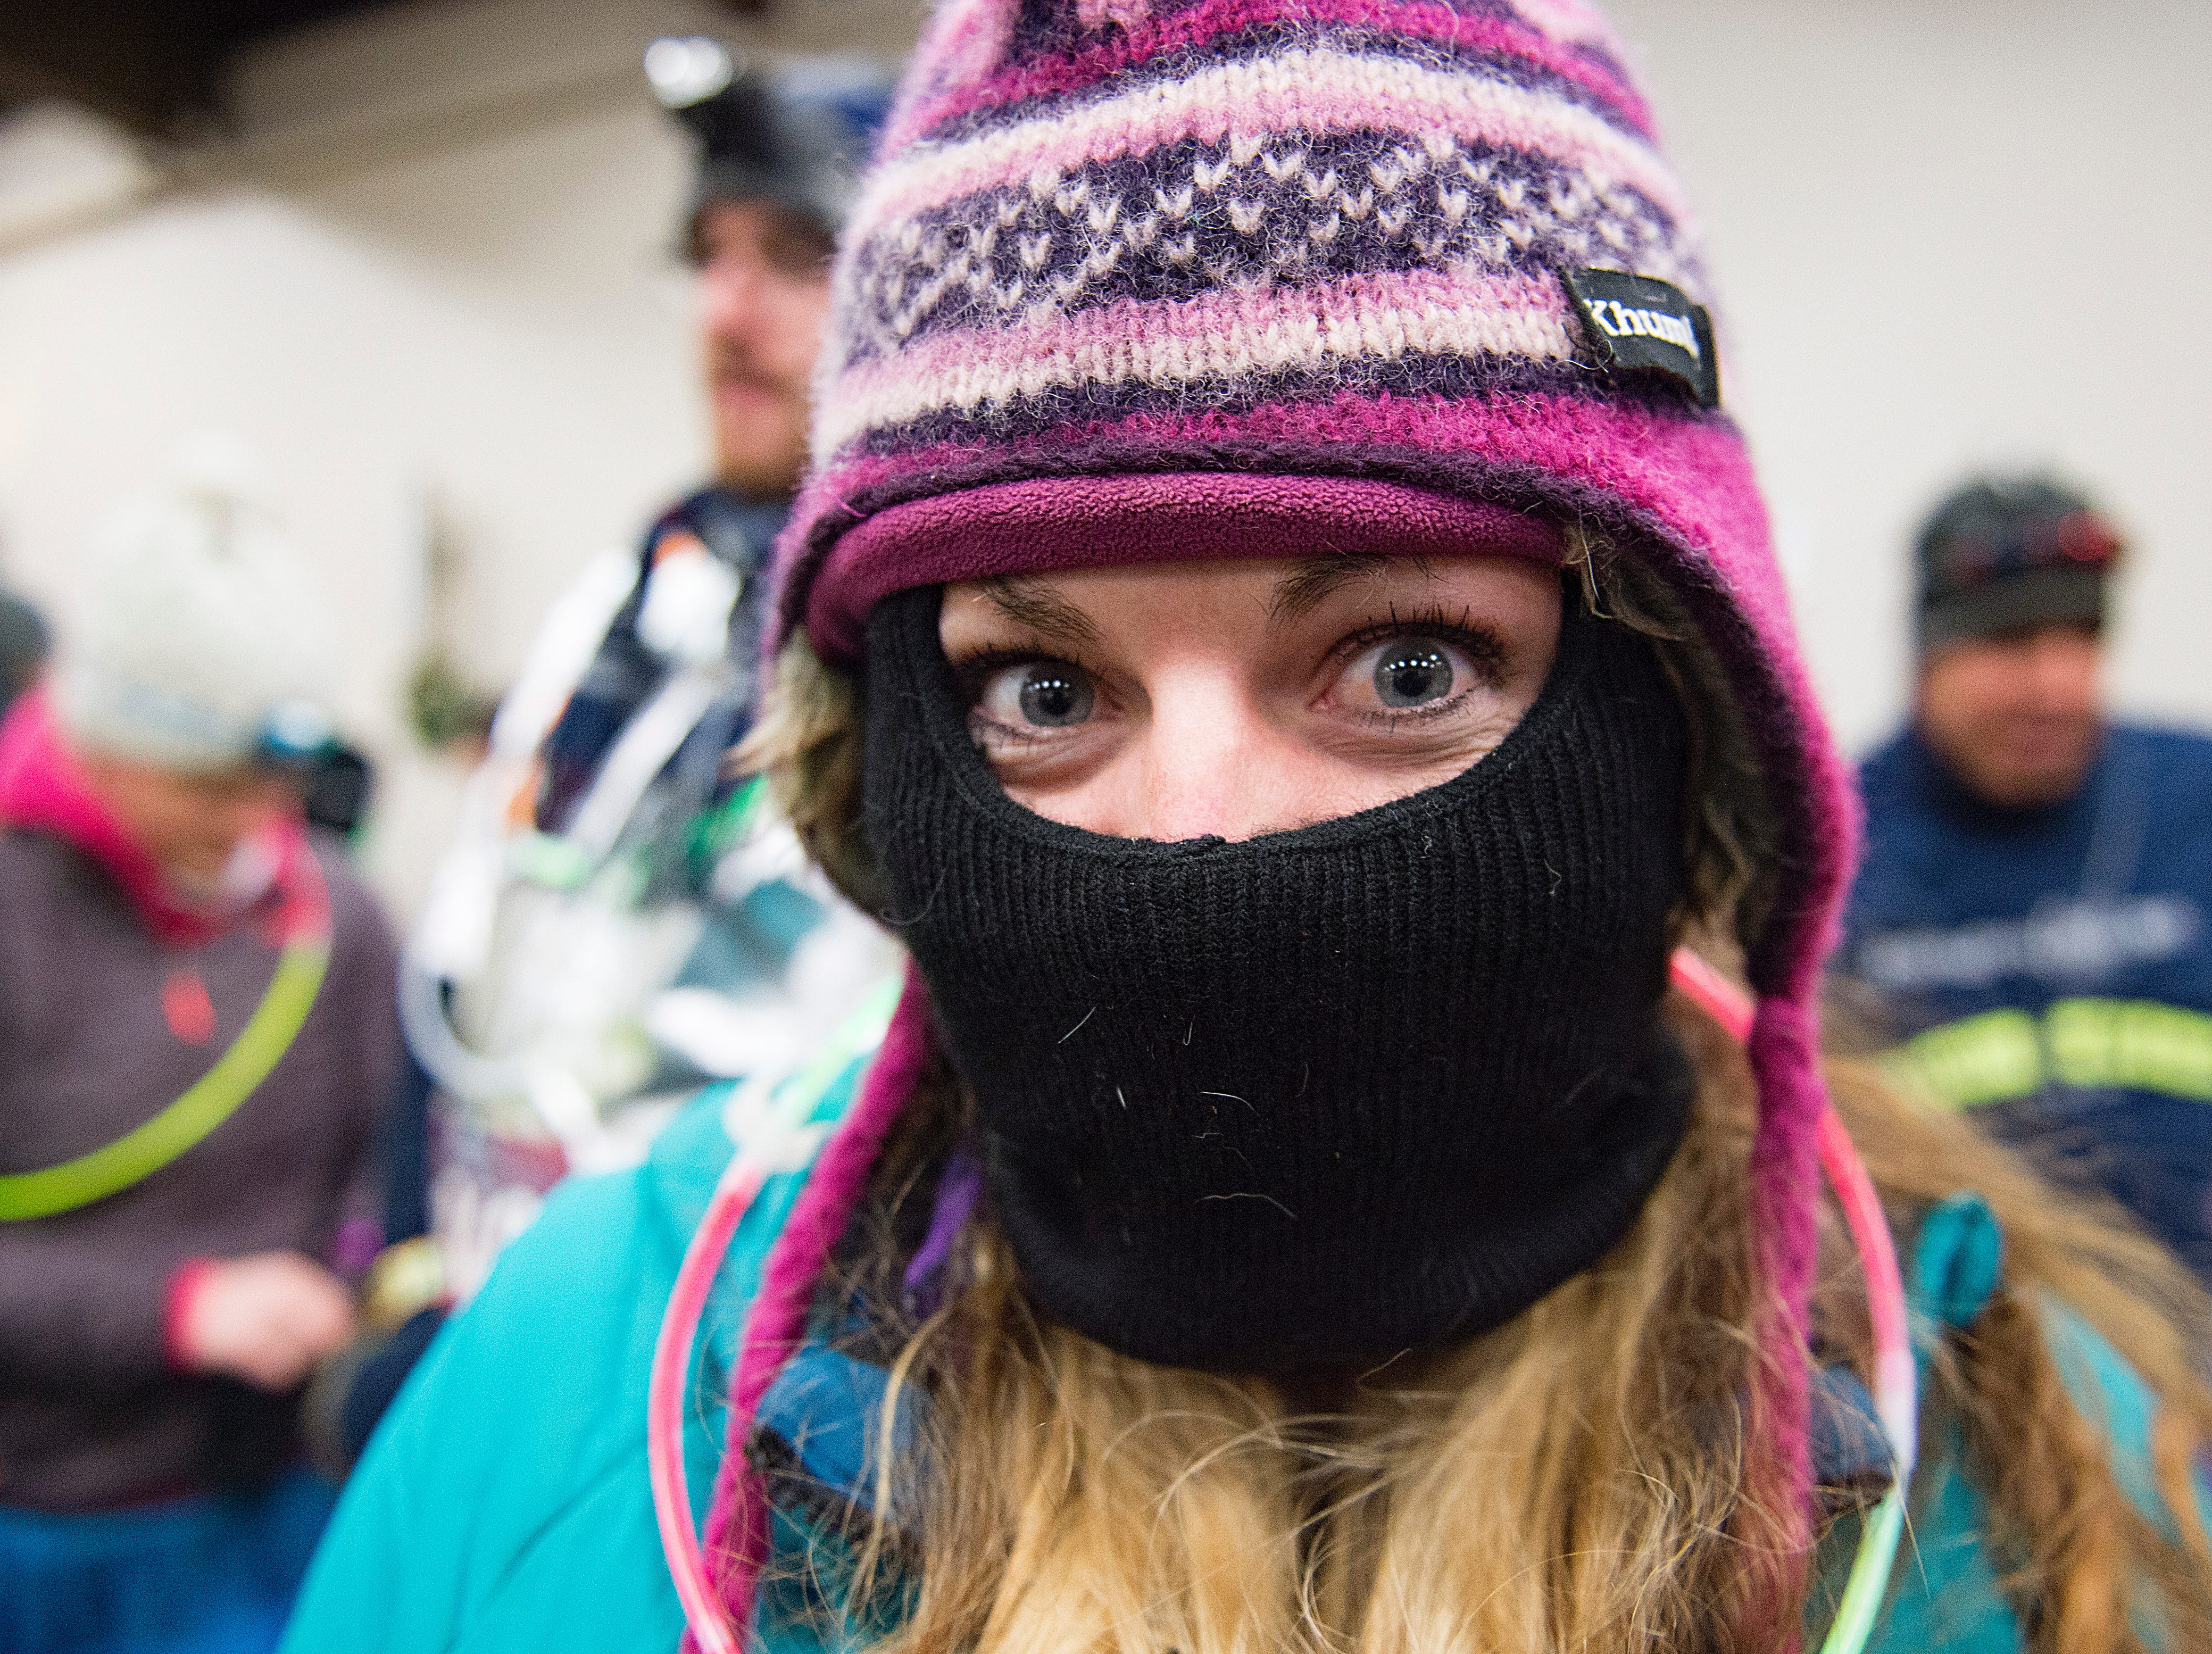 Courtney Blackmon bundles up before the Resolution Run 5K at Our Saviour's Lutheran Church on December 31, 2018. People braved single-digit temperatures to ring in the new year with the run.